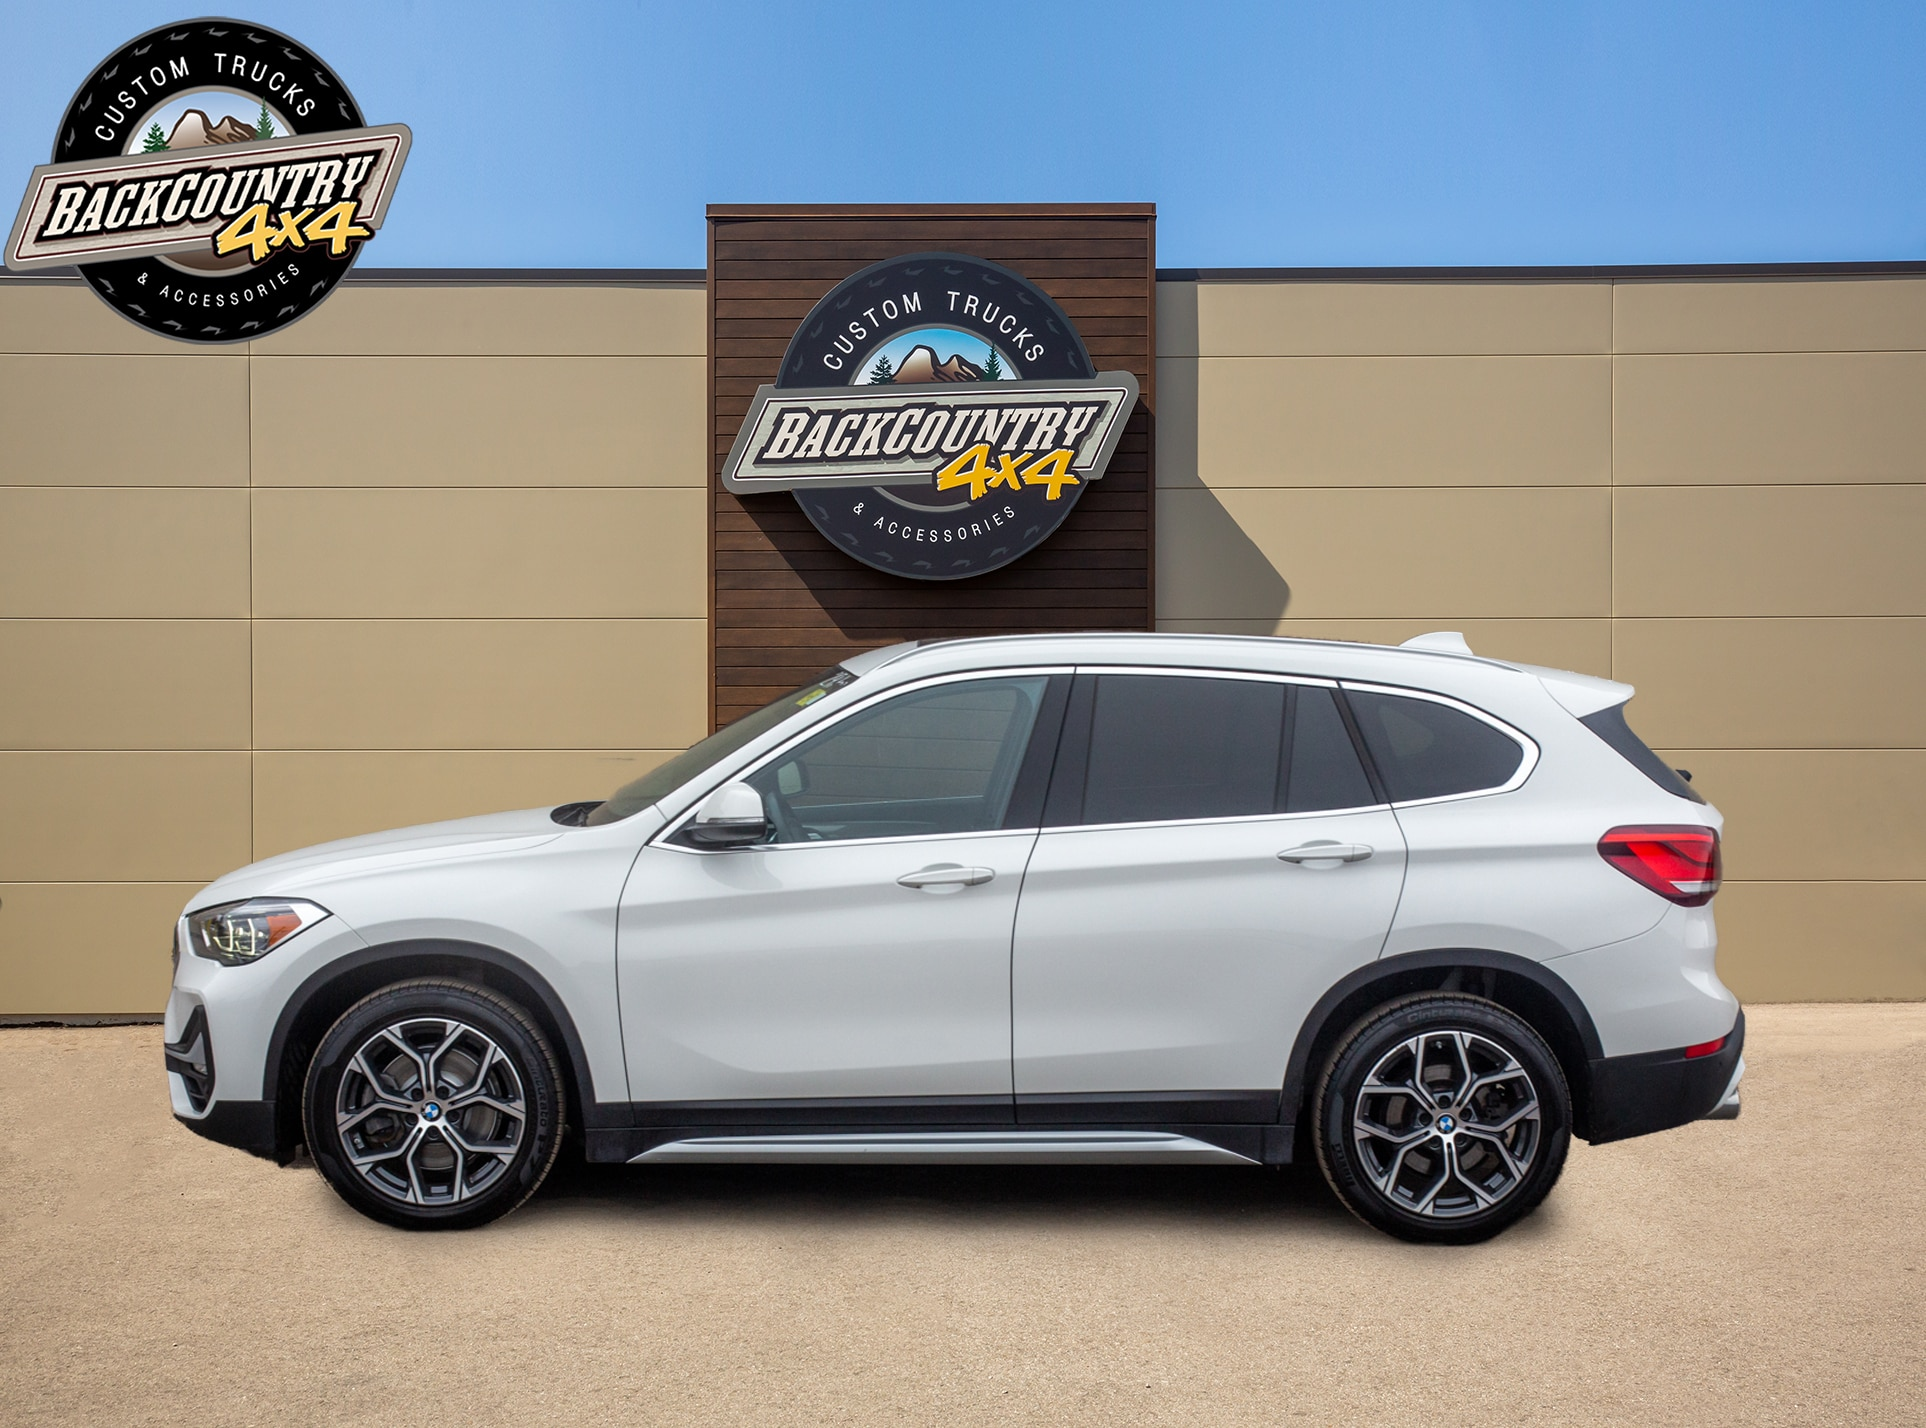 used 2020 BMW X1 car, priced at $35,999